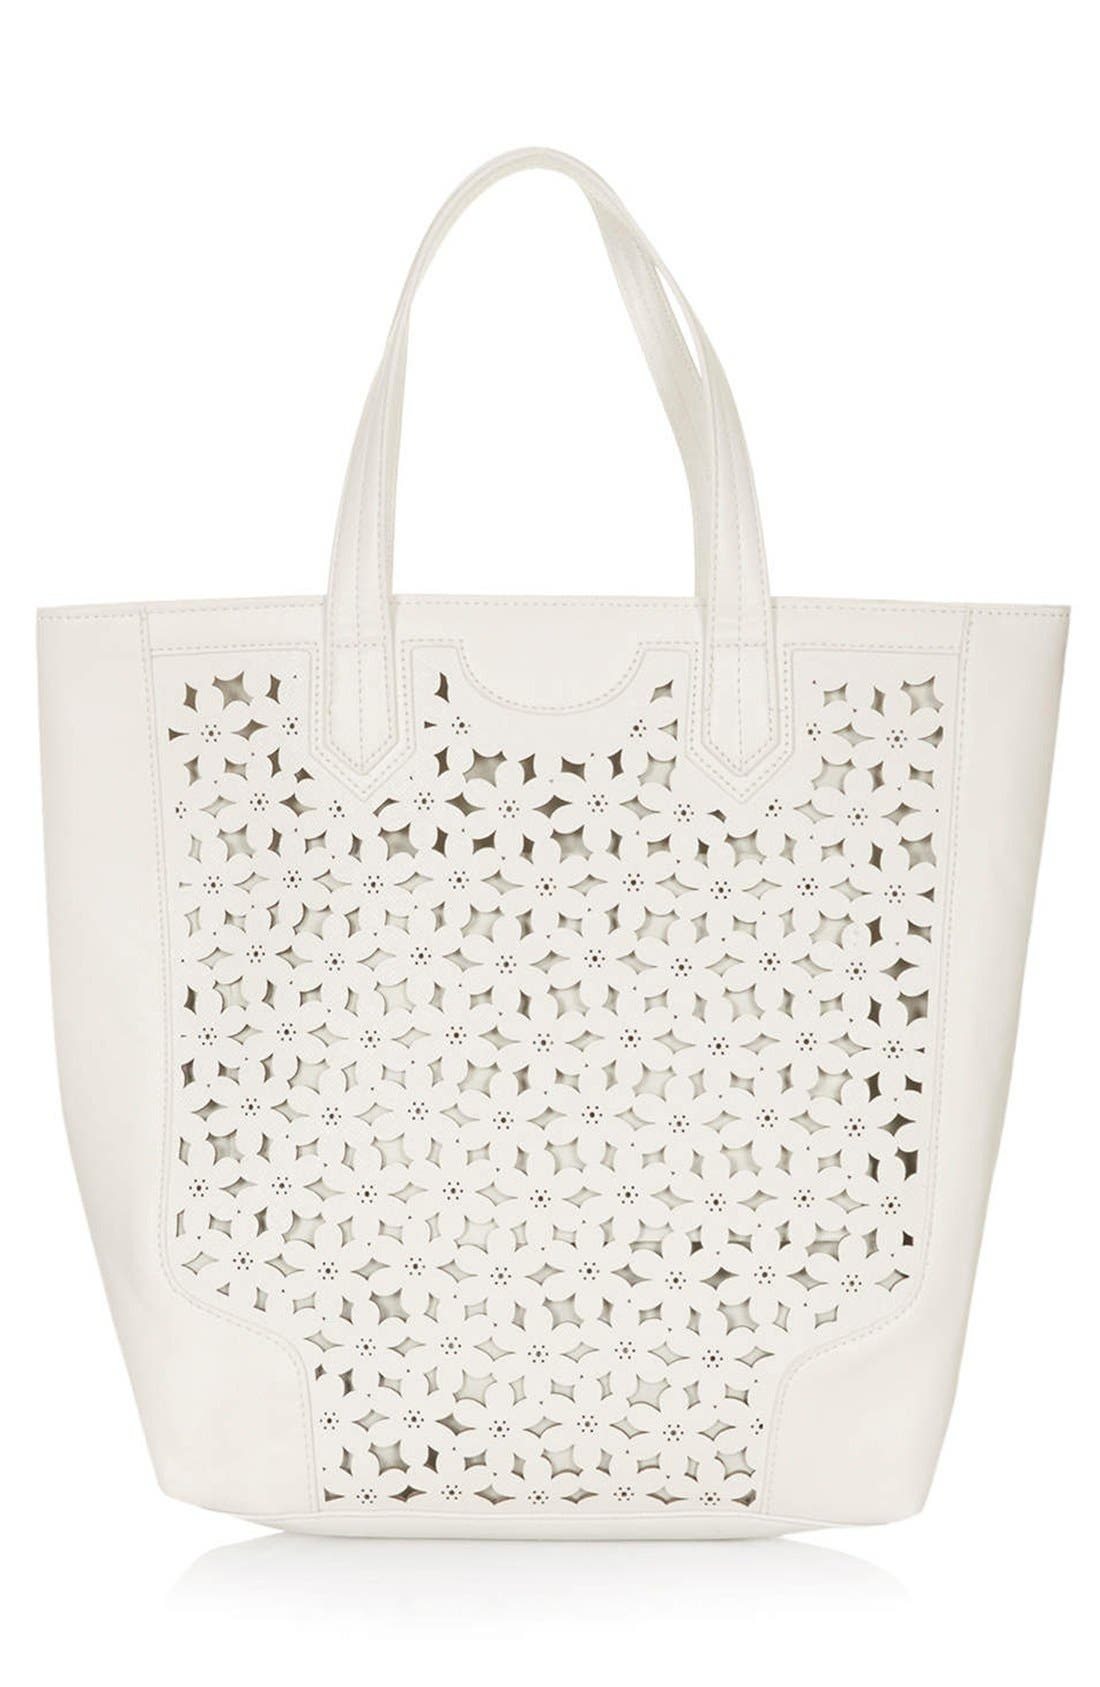 Alternate Image 1 Selected - Topshop Daisy Cutout Tote Bag